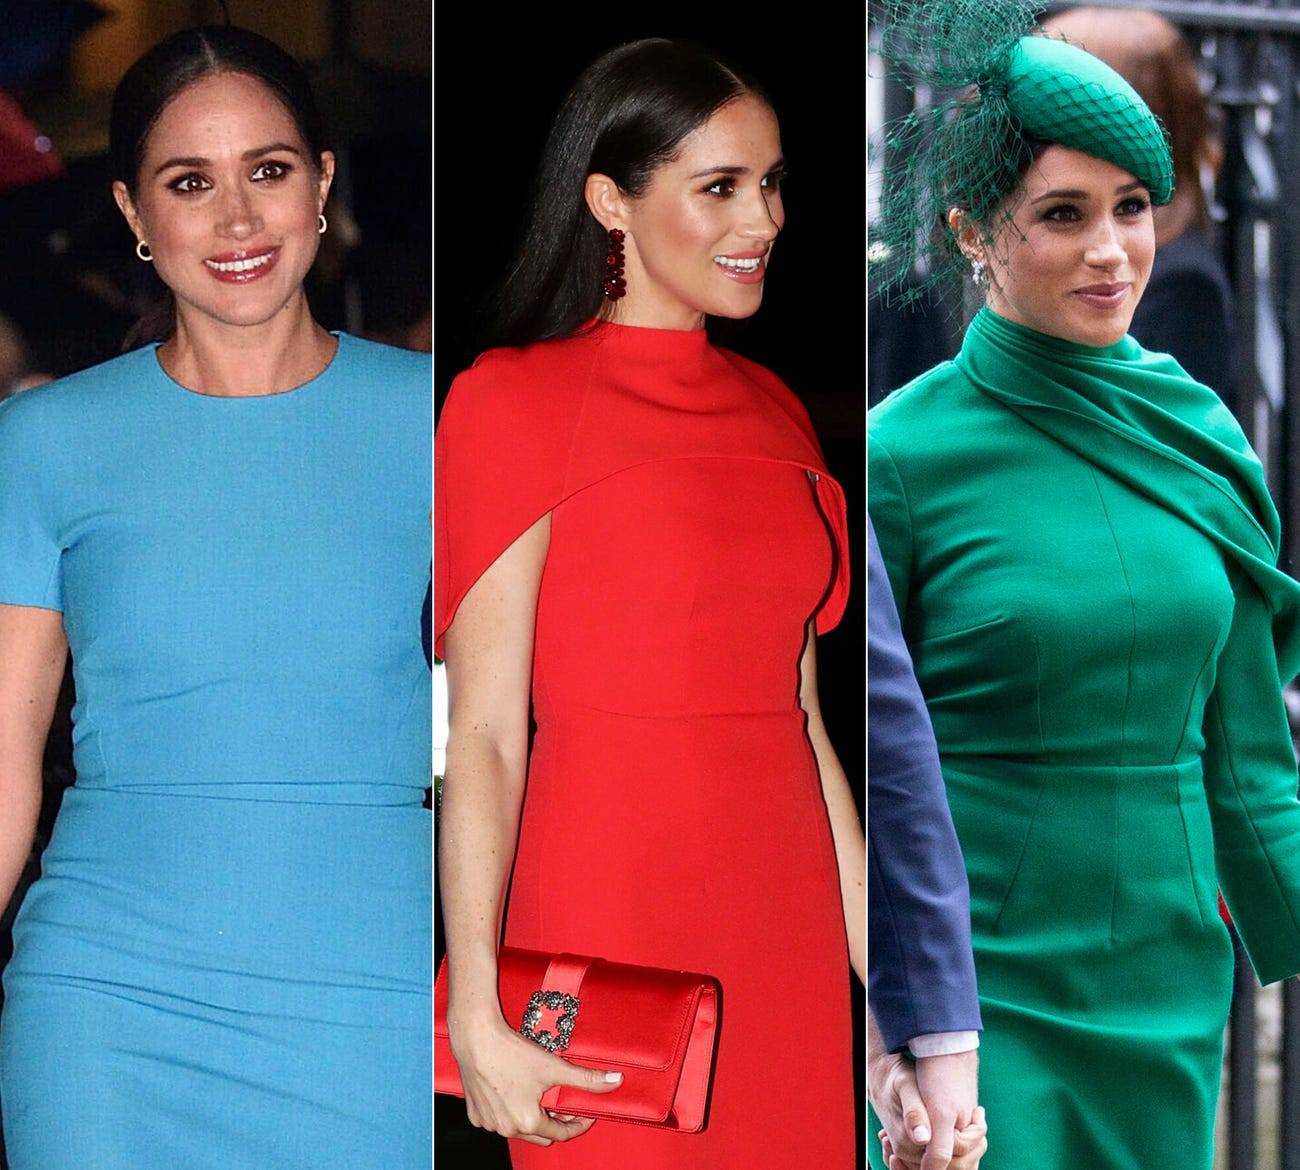 Meghan Markle's Looks for Her Final Royal Outing